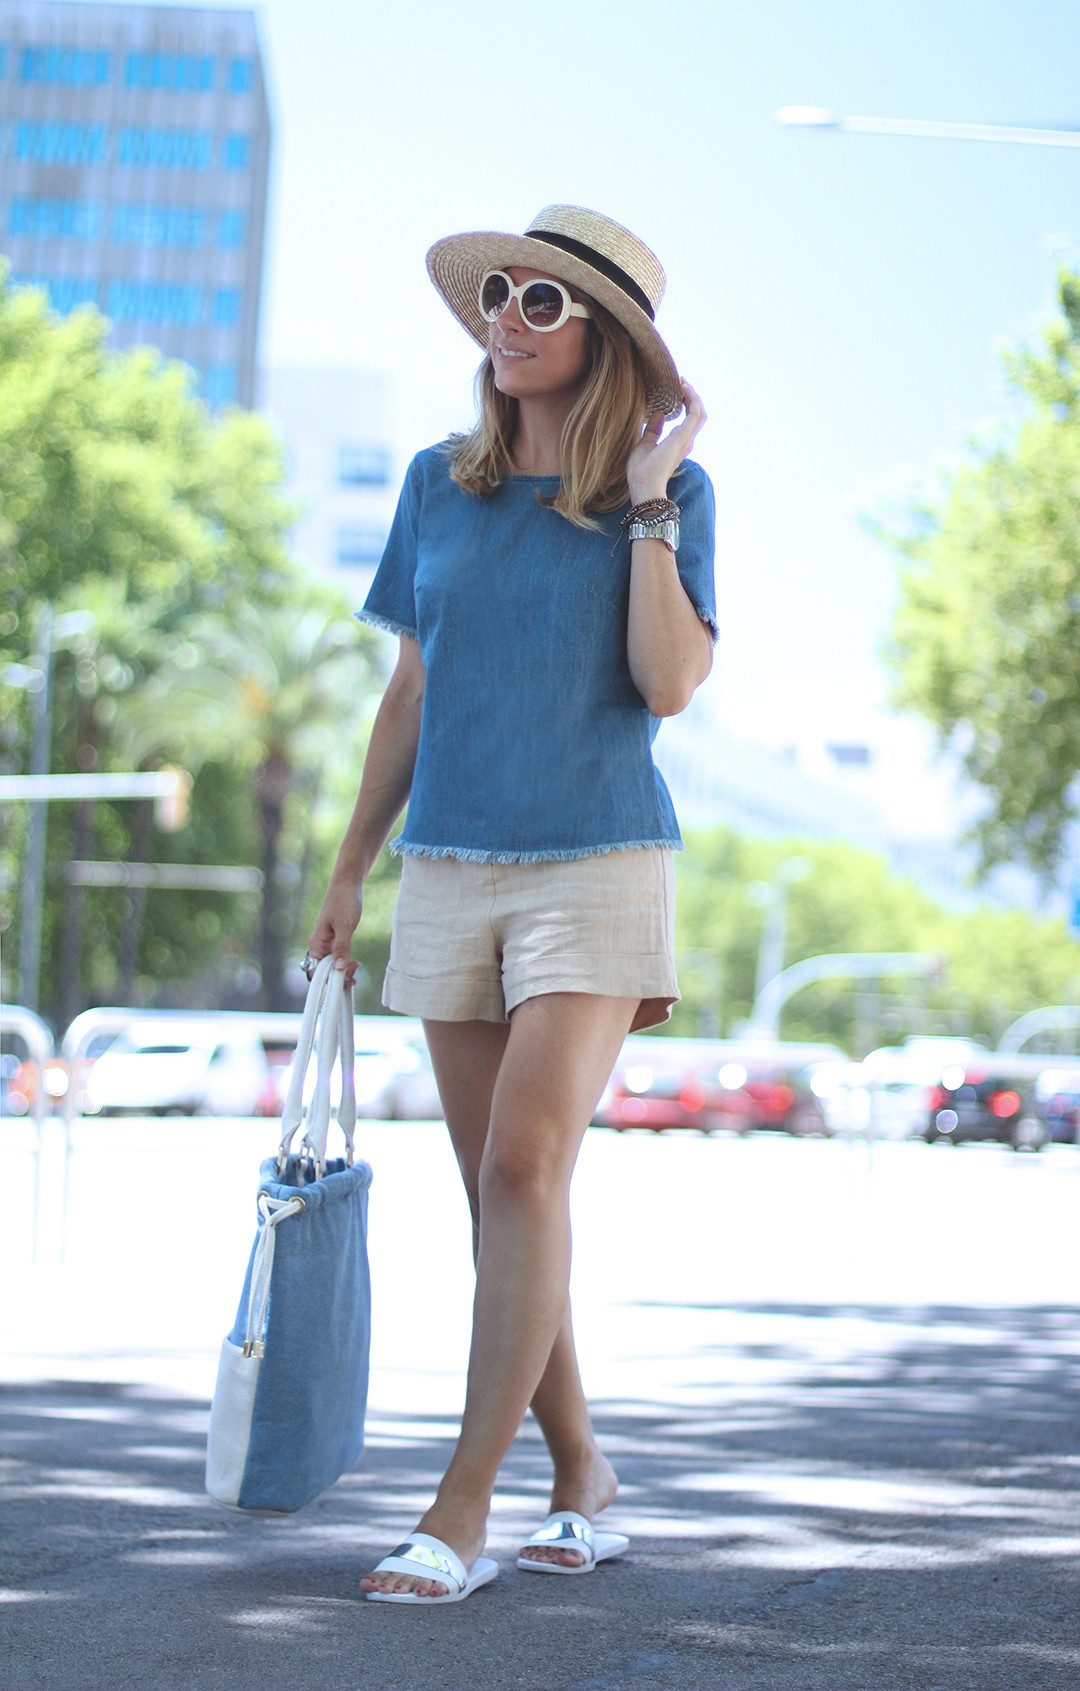 Barcelona-fashion-blog-Monica-Sors-denim-outfit-22JPG